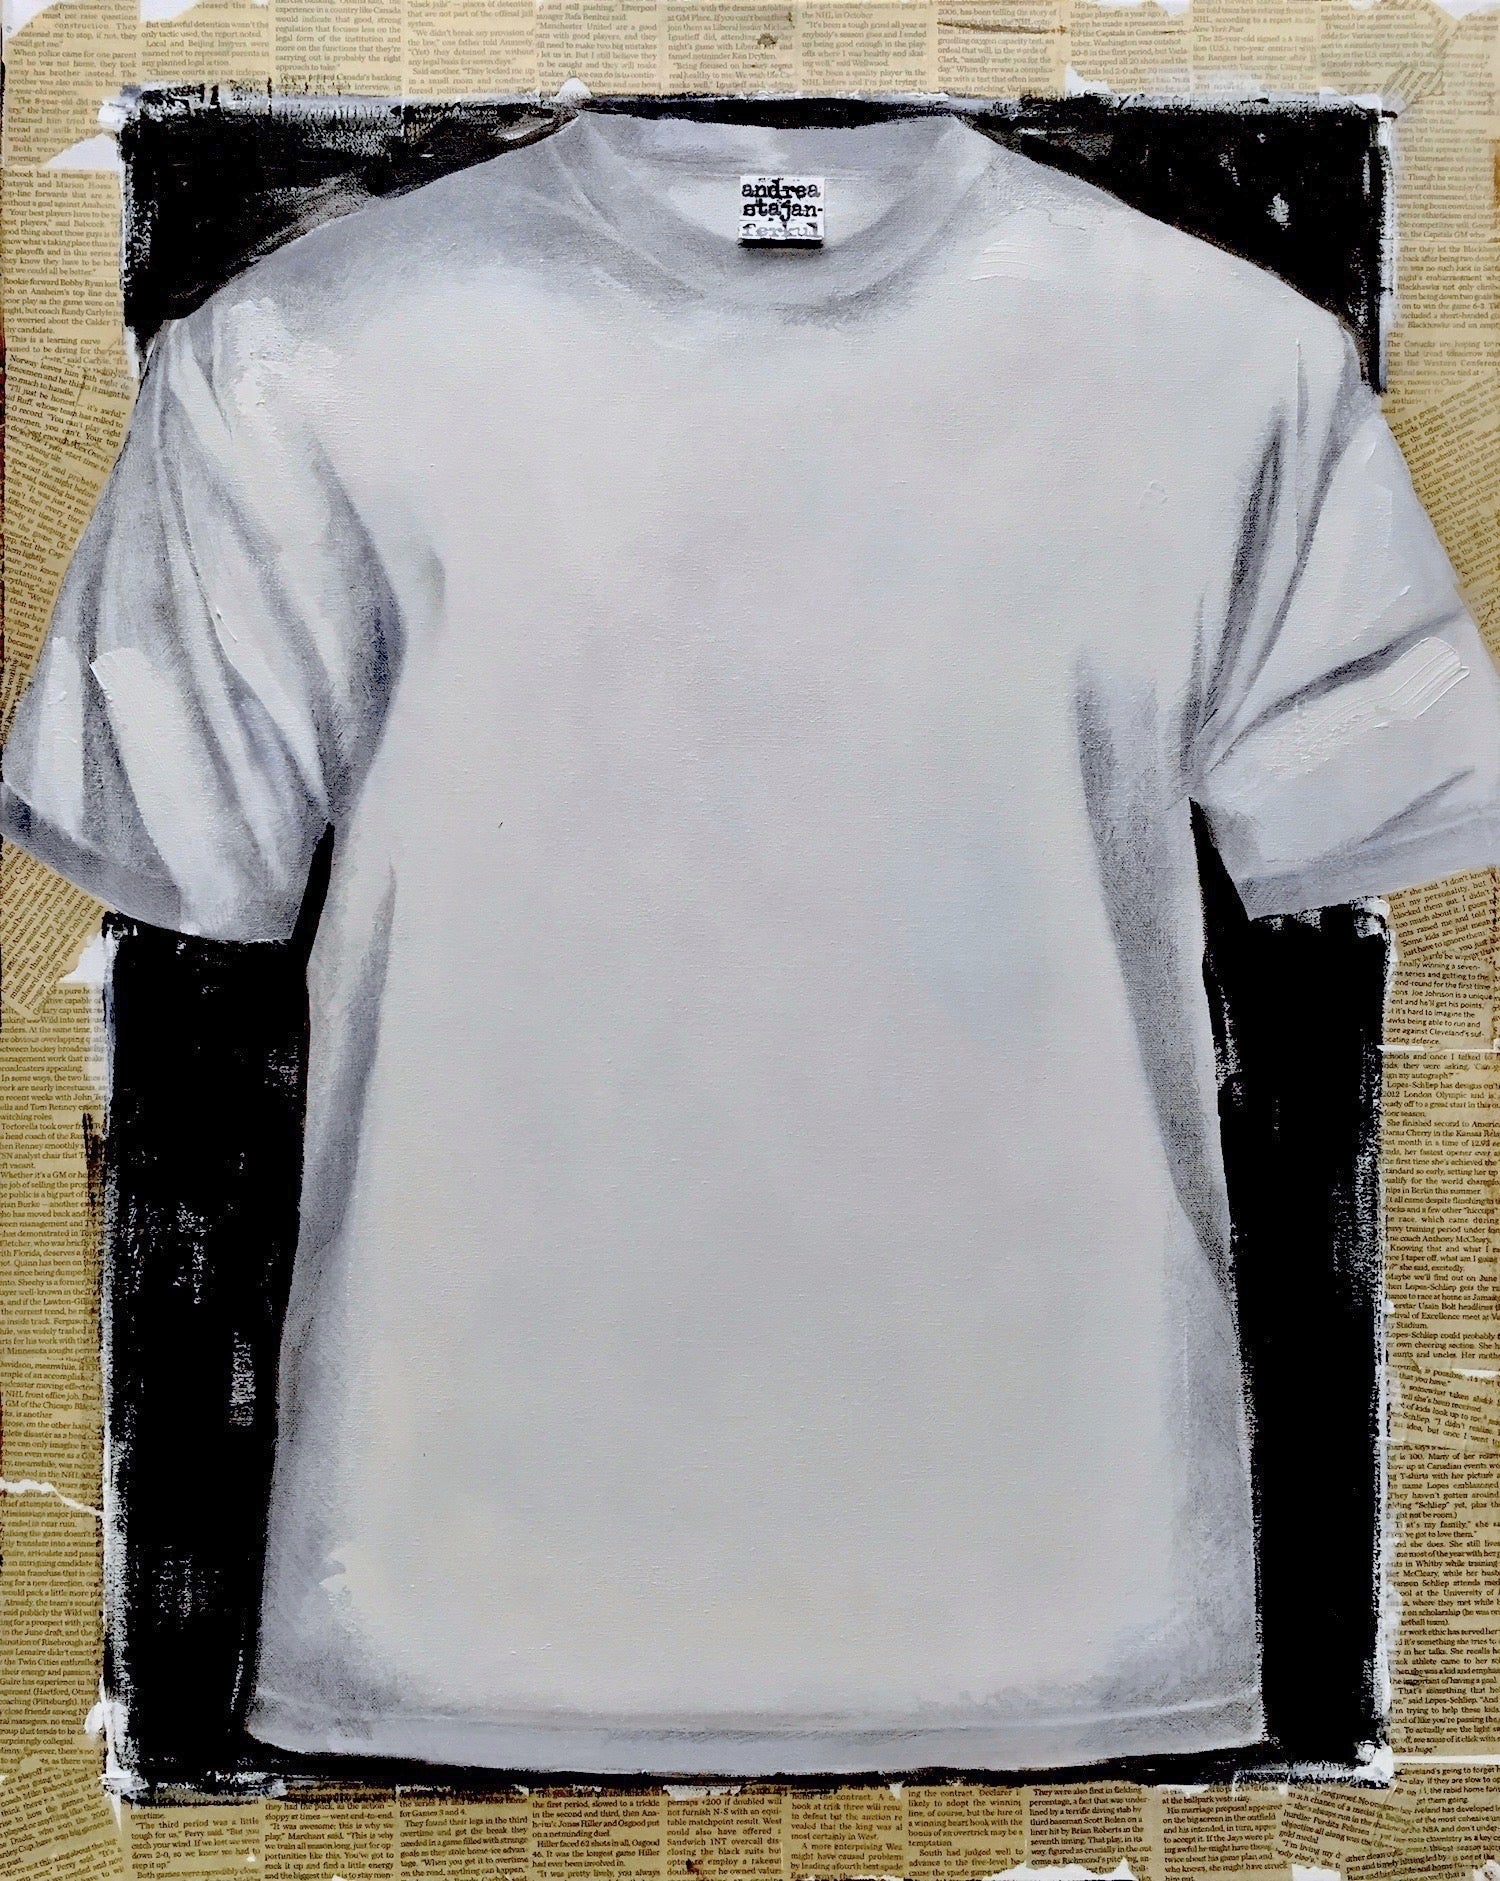 Untitled, T-shirt 2 (series 1 - 9)